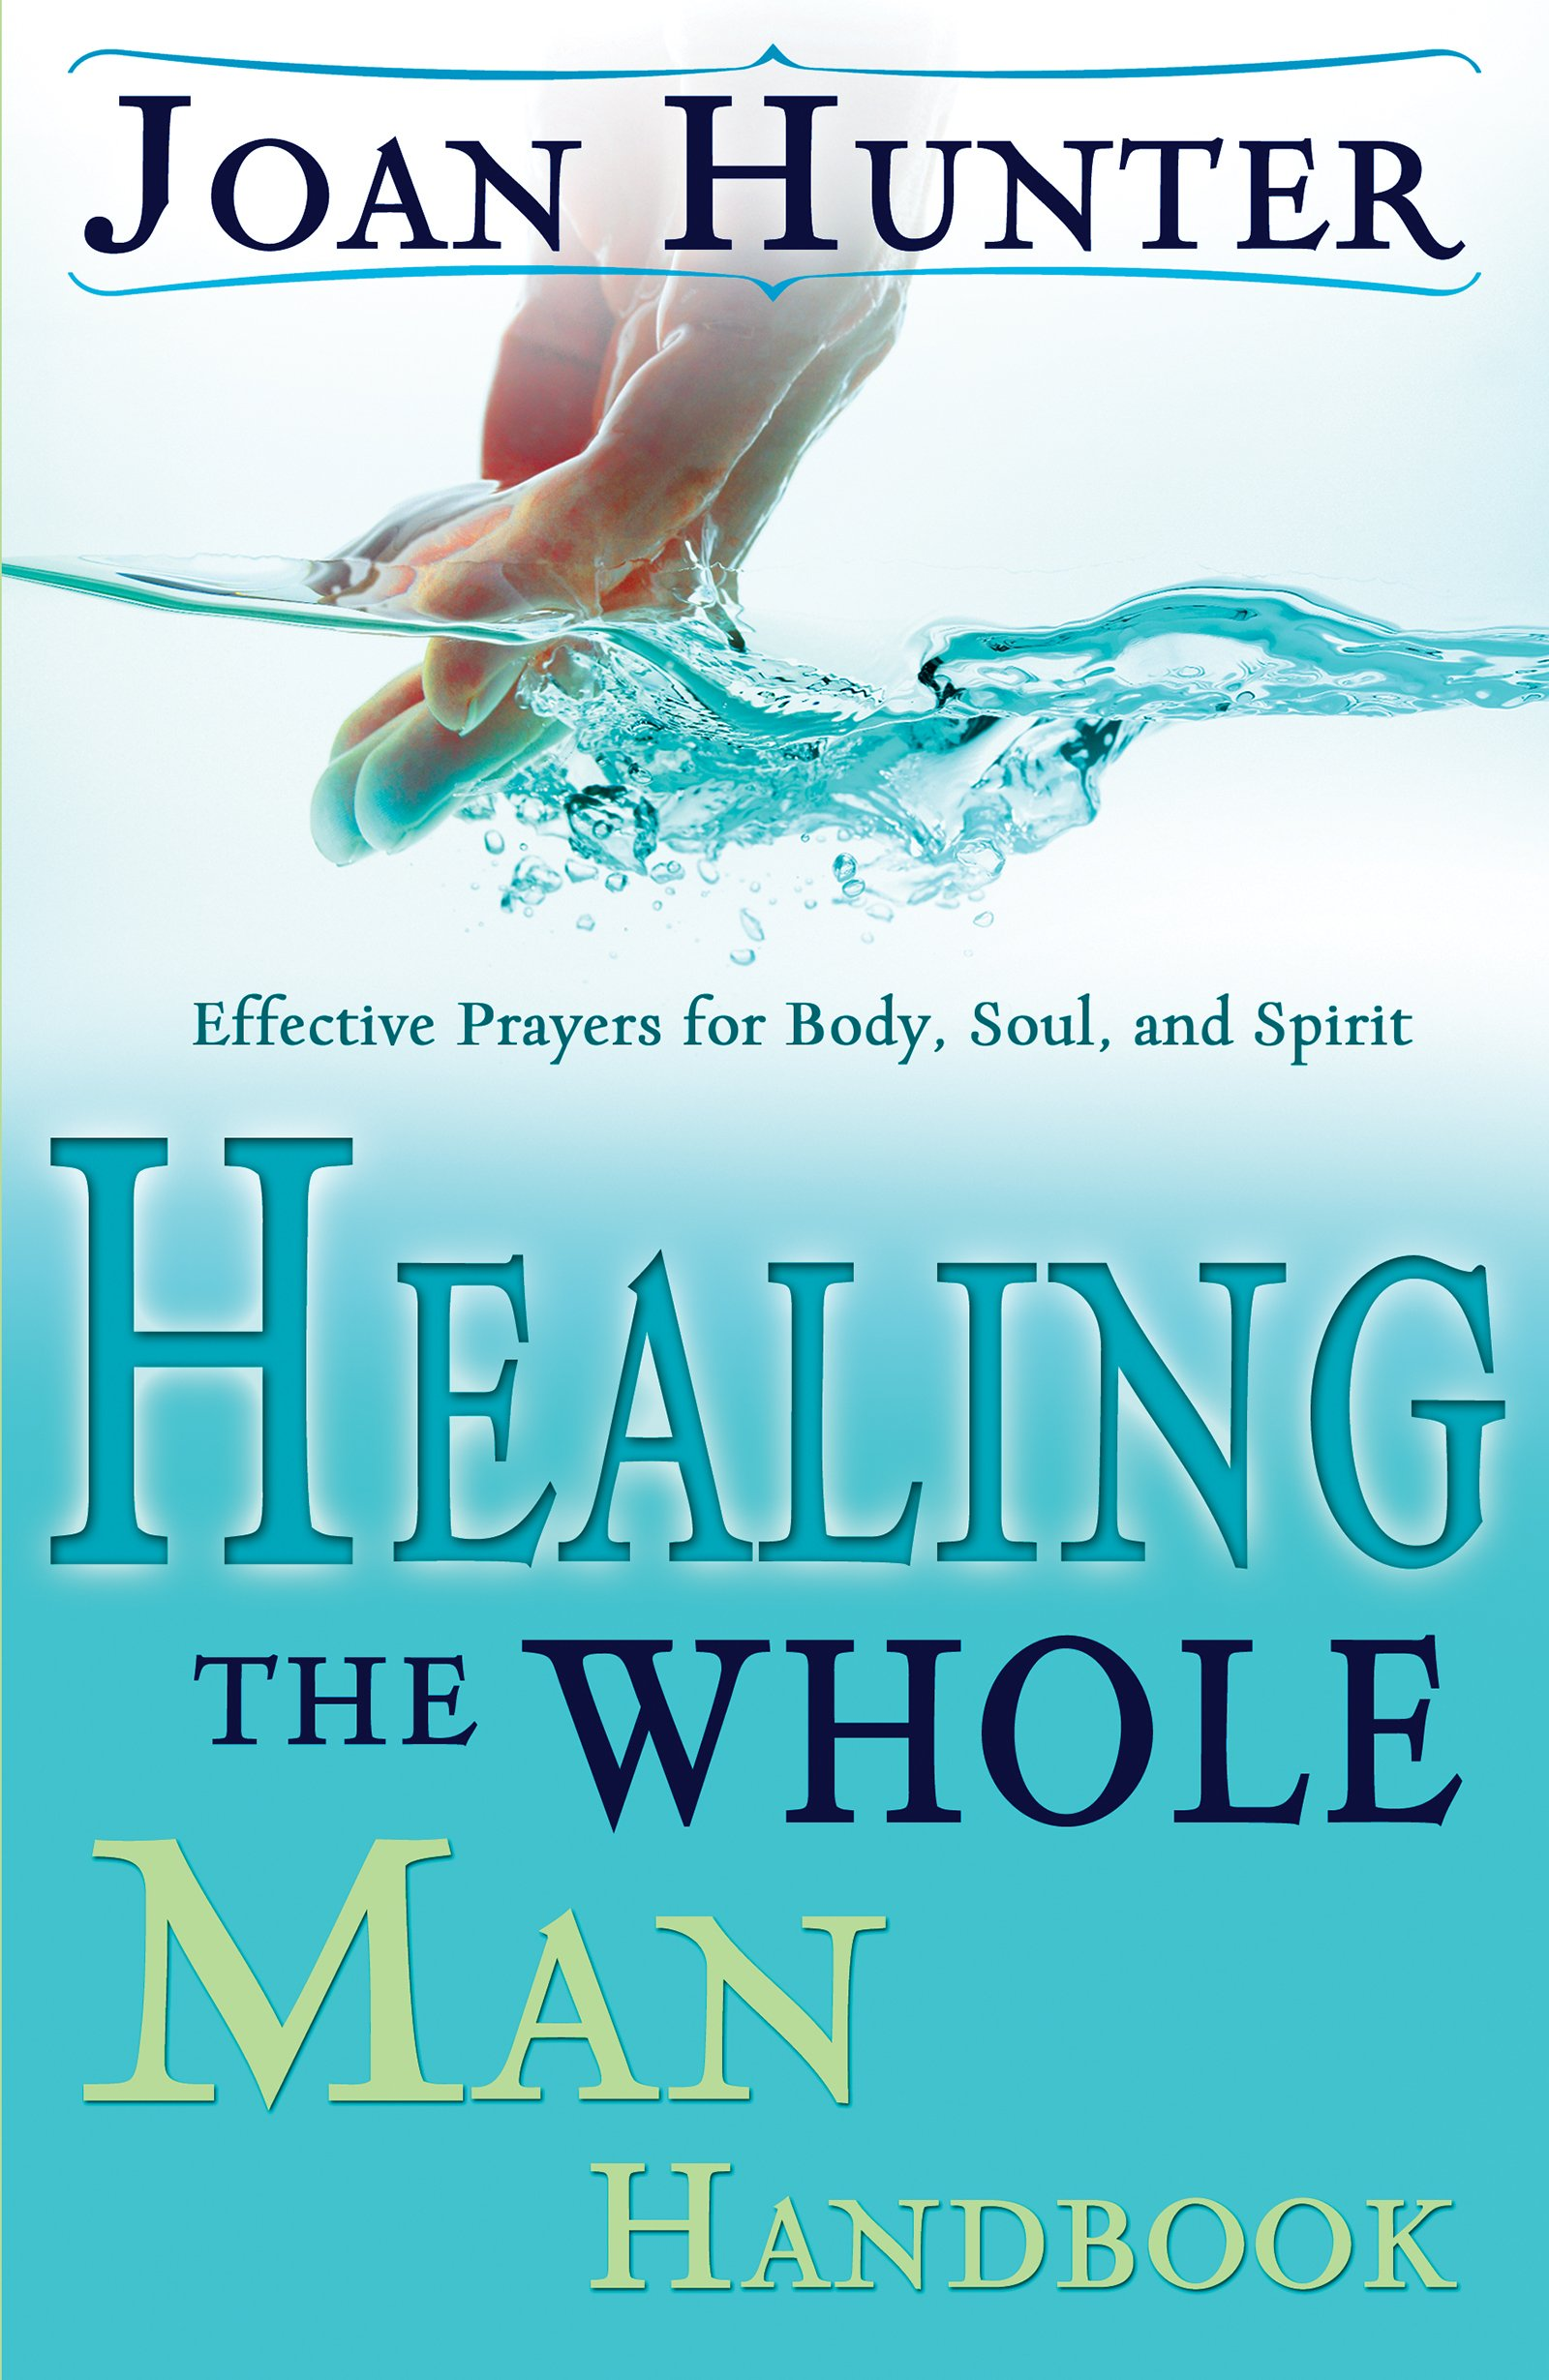 Healing the Whole Man Handbook: Effective Prayers for Body, Soul, and Spirit:  Joan Hunter: 9780883688151: Amazon.com: Books